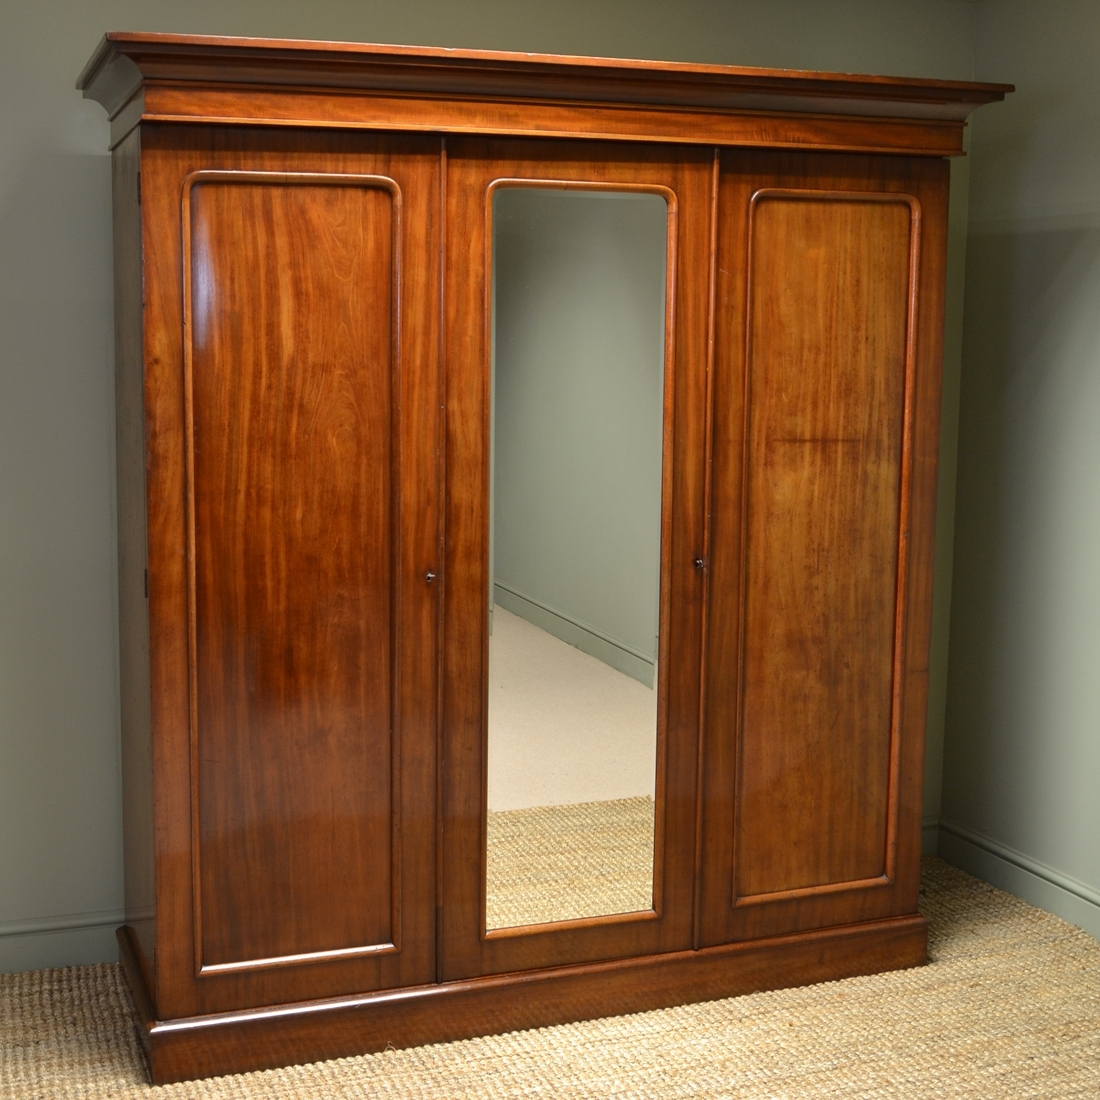 antique beveled door wardrobes mahogany closet armoire mirror wardrobe or shop